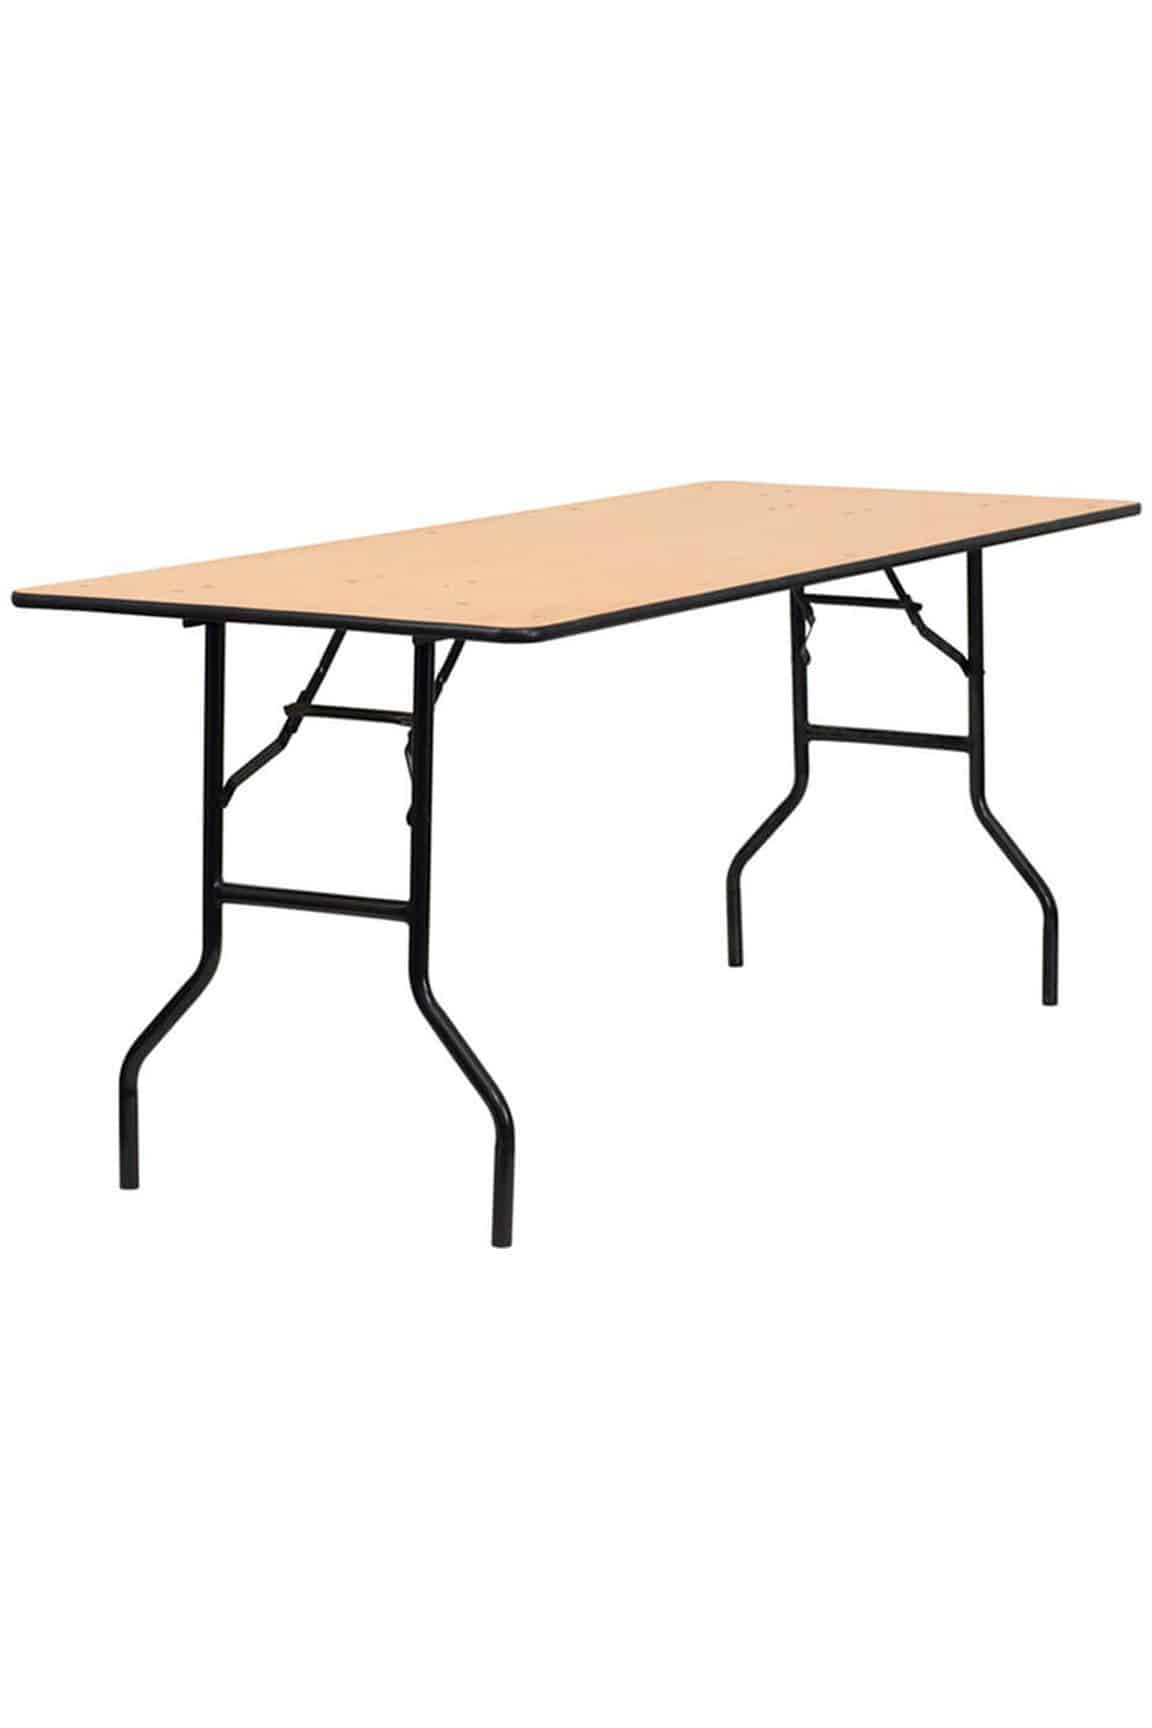 rectangle folding trestle table For Hire Herts Beds and Bucks